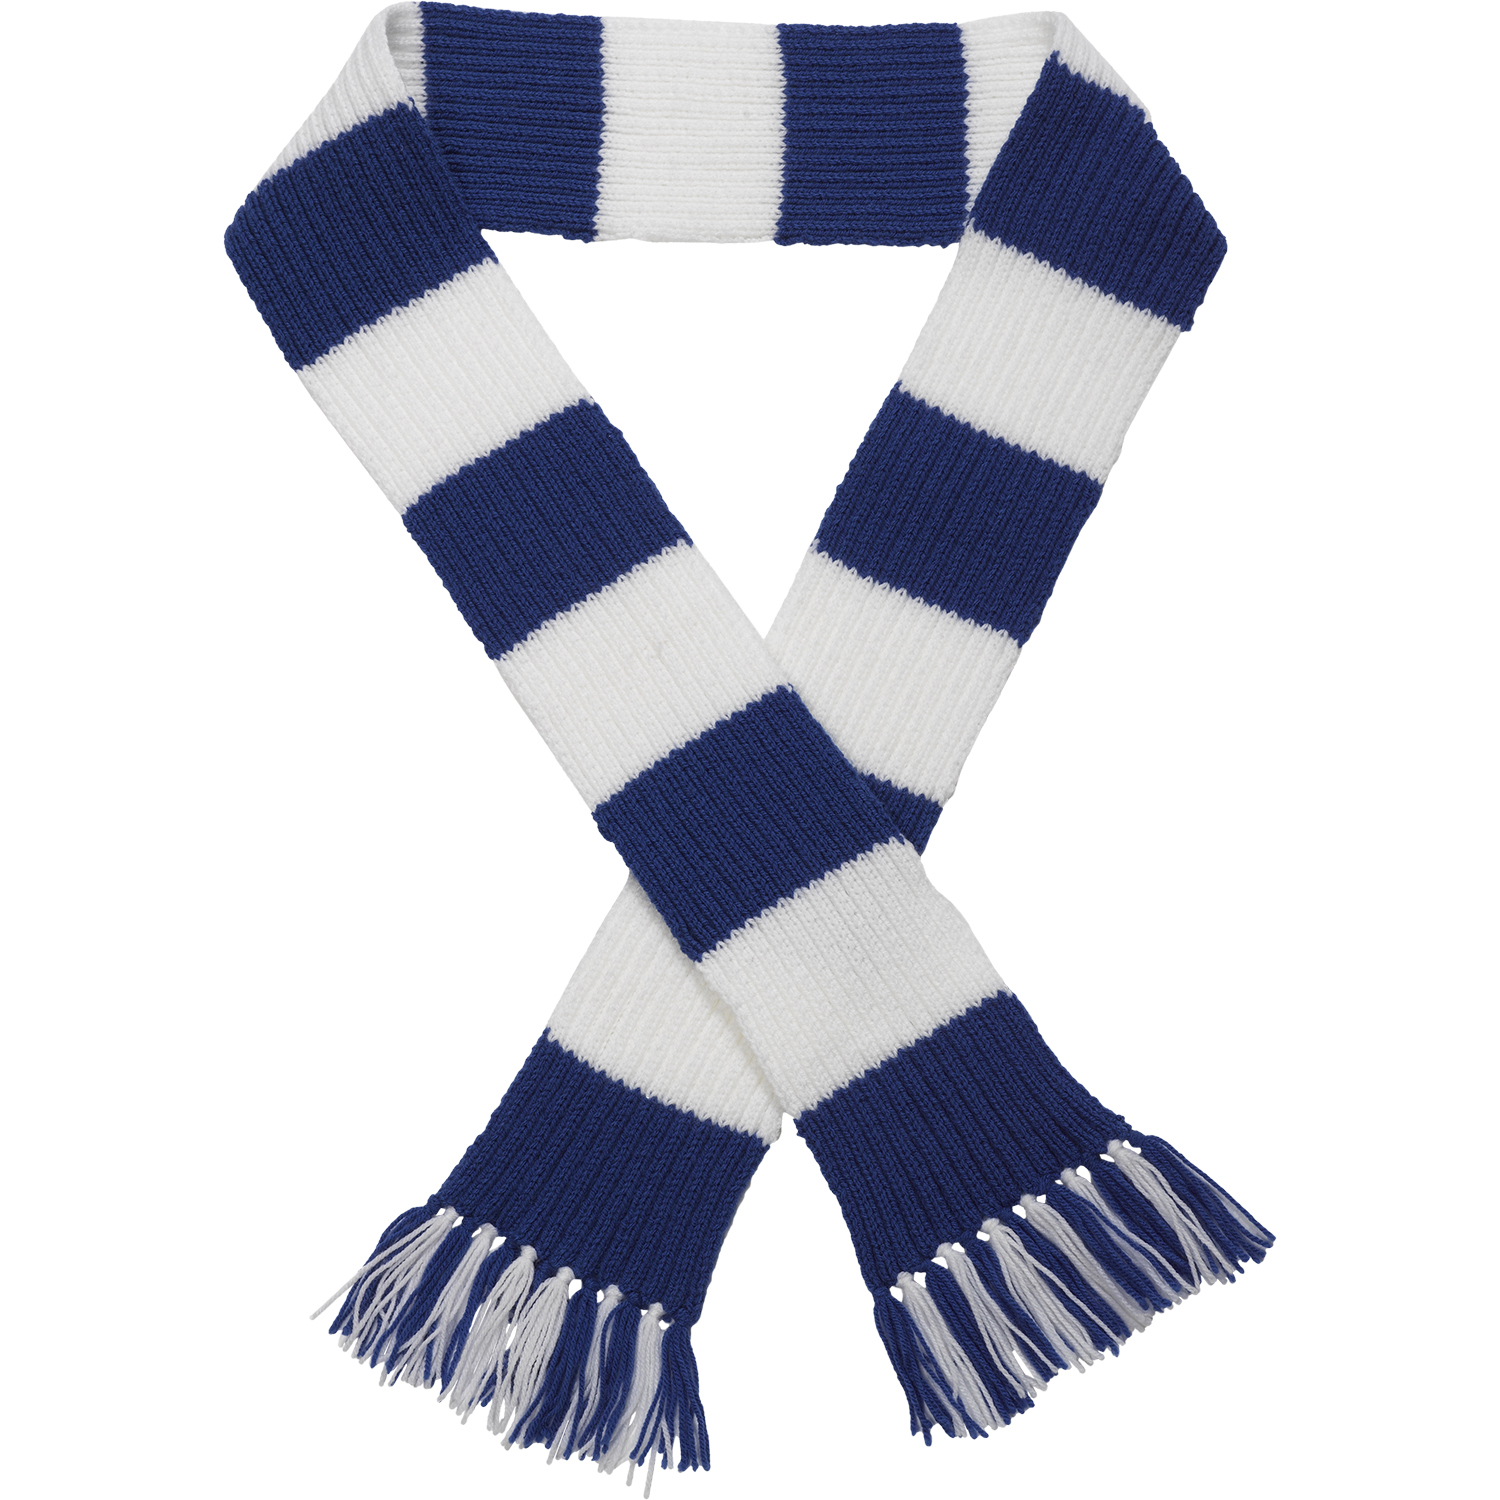 Knit Striped Scarf Pattern : Premier League Team Striped Football Scarf Knitting Pattern Wool Craft Hobby ...